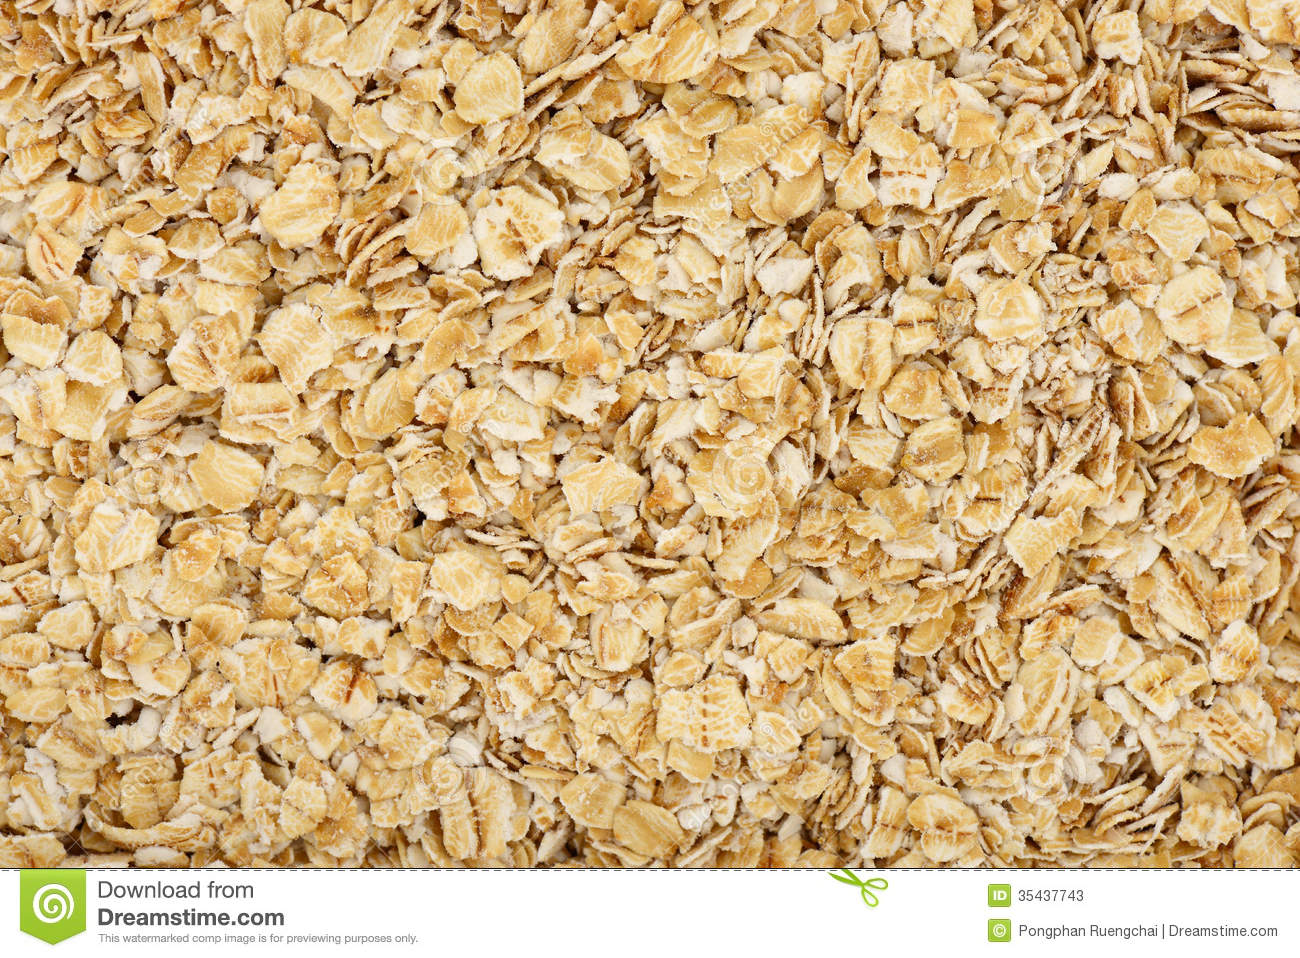 Pinart royalty free rf. Cereal clipart oats